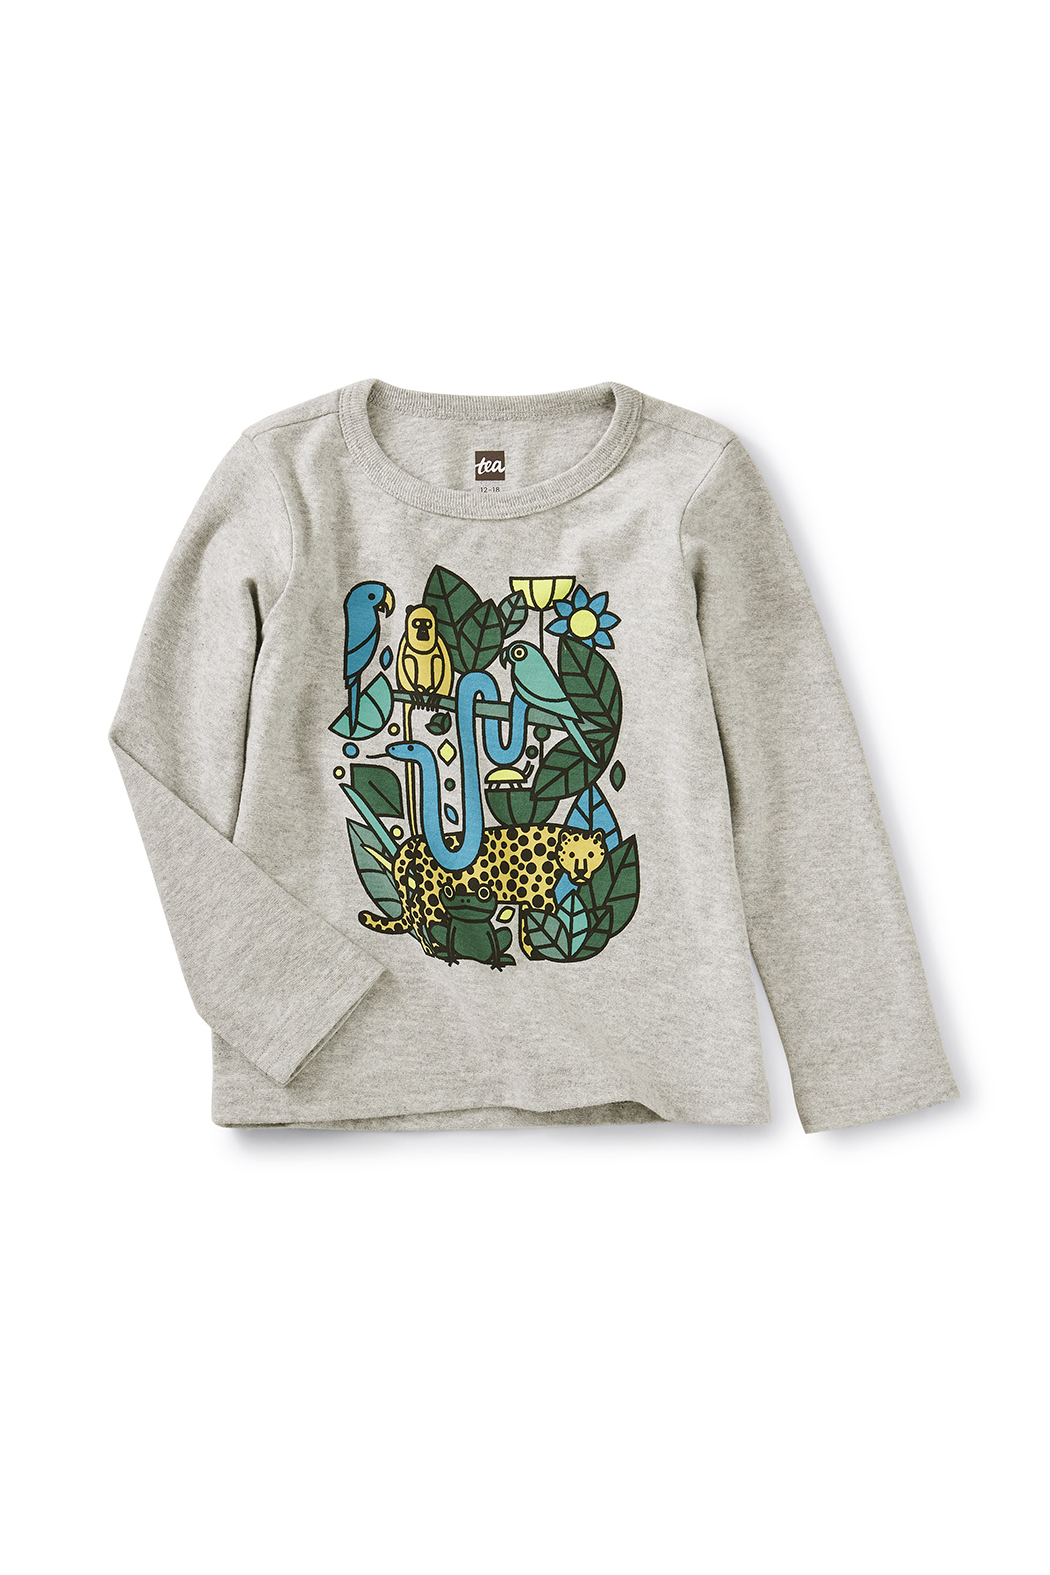 Tea Collection Incan Animals Graphic Tee - Main Image